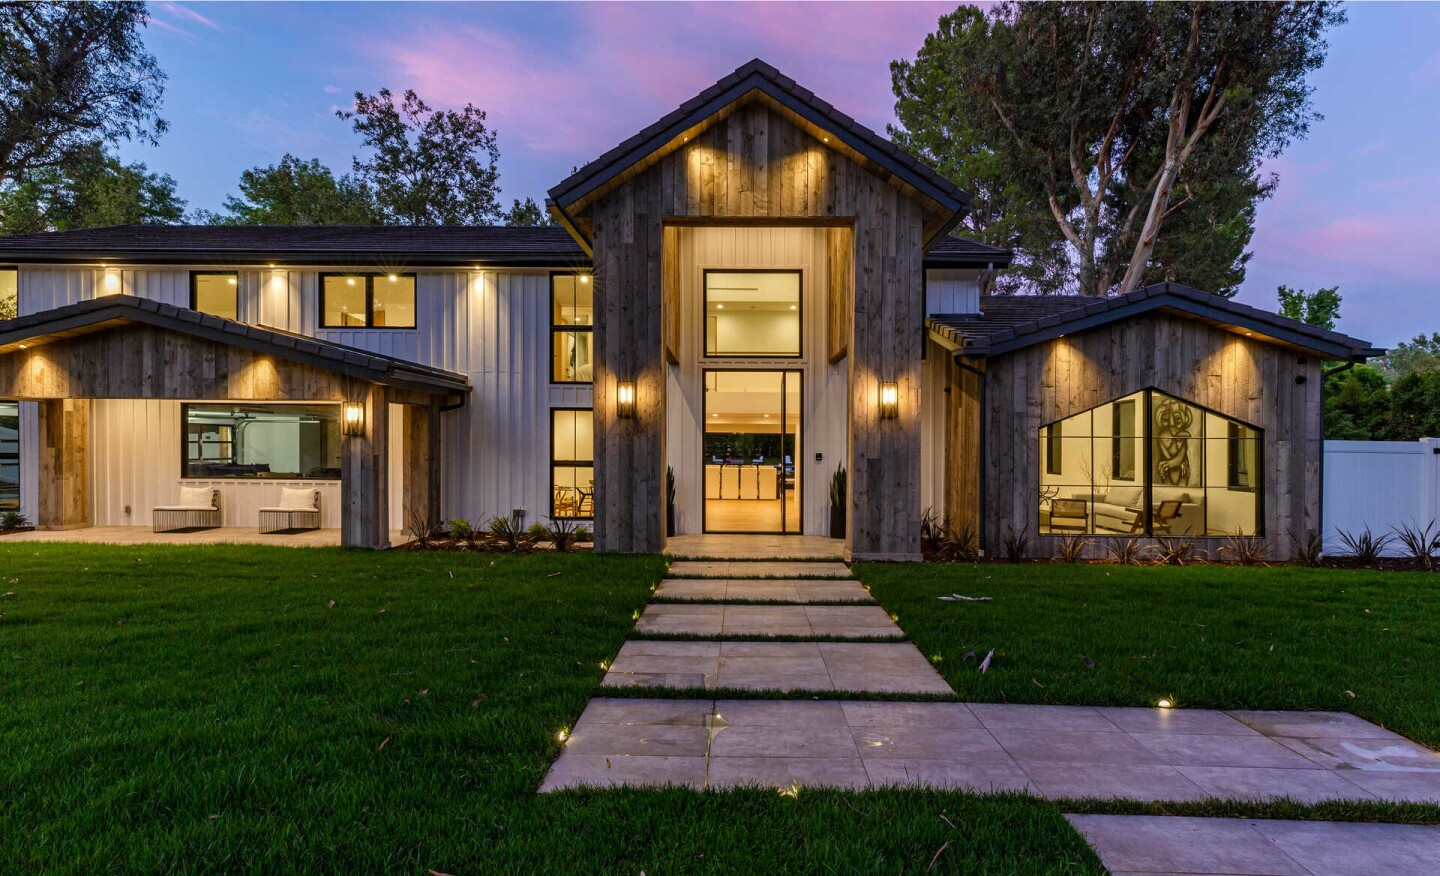 Recently remodeled, the 5,663-square-foot retreat includes a massive open floor plan, two primary suites, a reclaimed wood pavilion and pool.